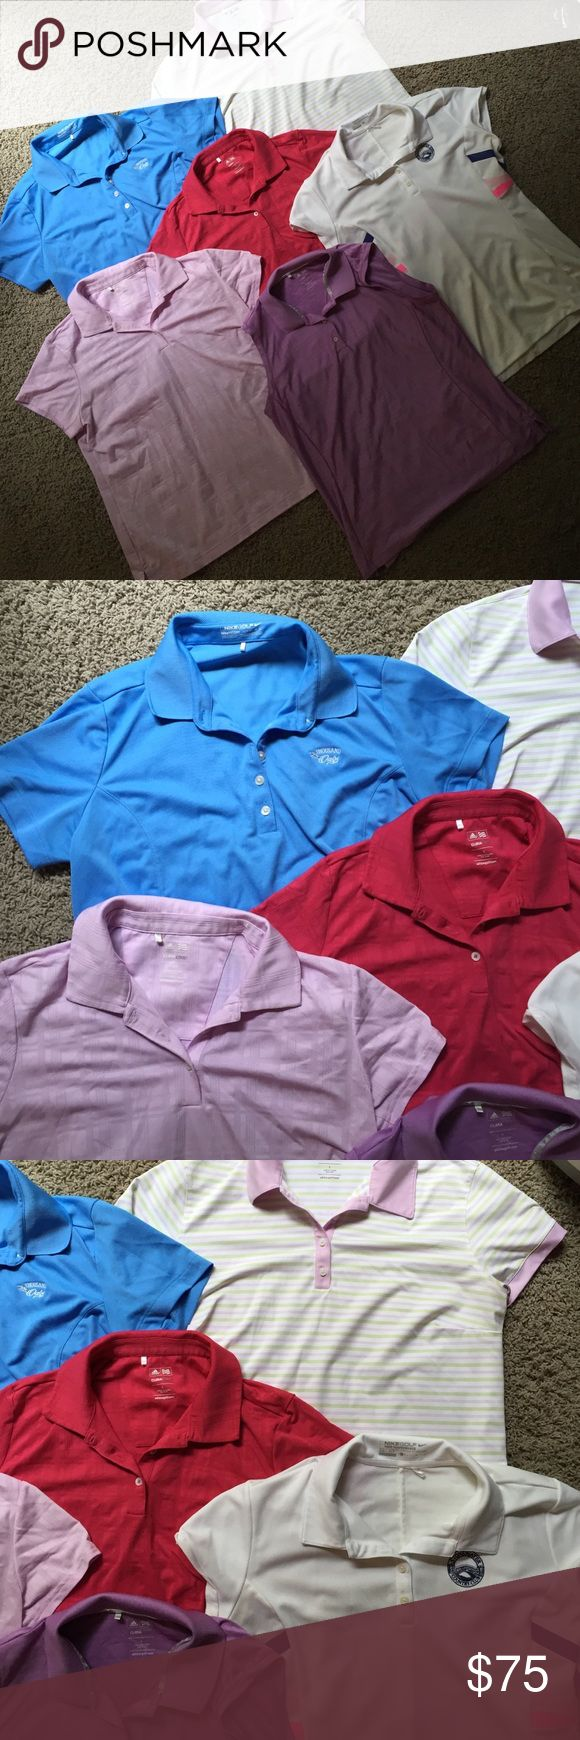 Bundle of six Nike and Adidas women's golf shirts **Willing to separate**1 Adidas sleeveless size large golf shirt in lavender; 2 Nike shirt sleeve golf shirts, size large in cornflower blue and white with pink and purple accents; 3 Adidas short sleeve golf shirts, size large in magenta, light lavender, and white with green and pink stripes Nike Tops Tees - Short Sleeve